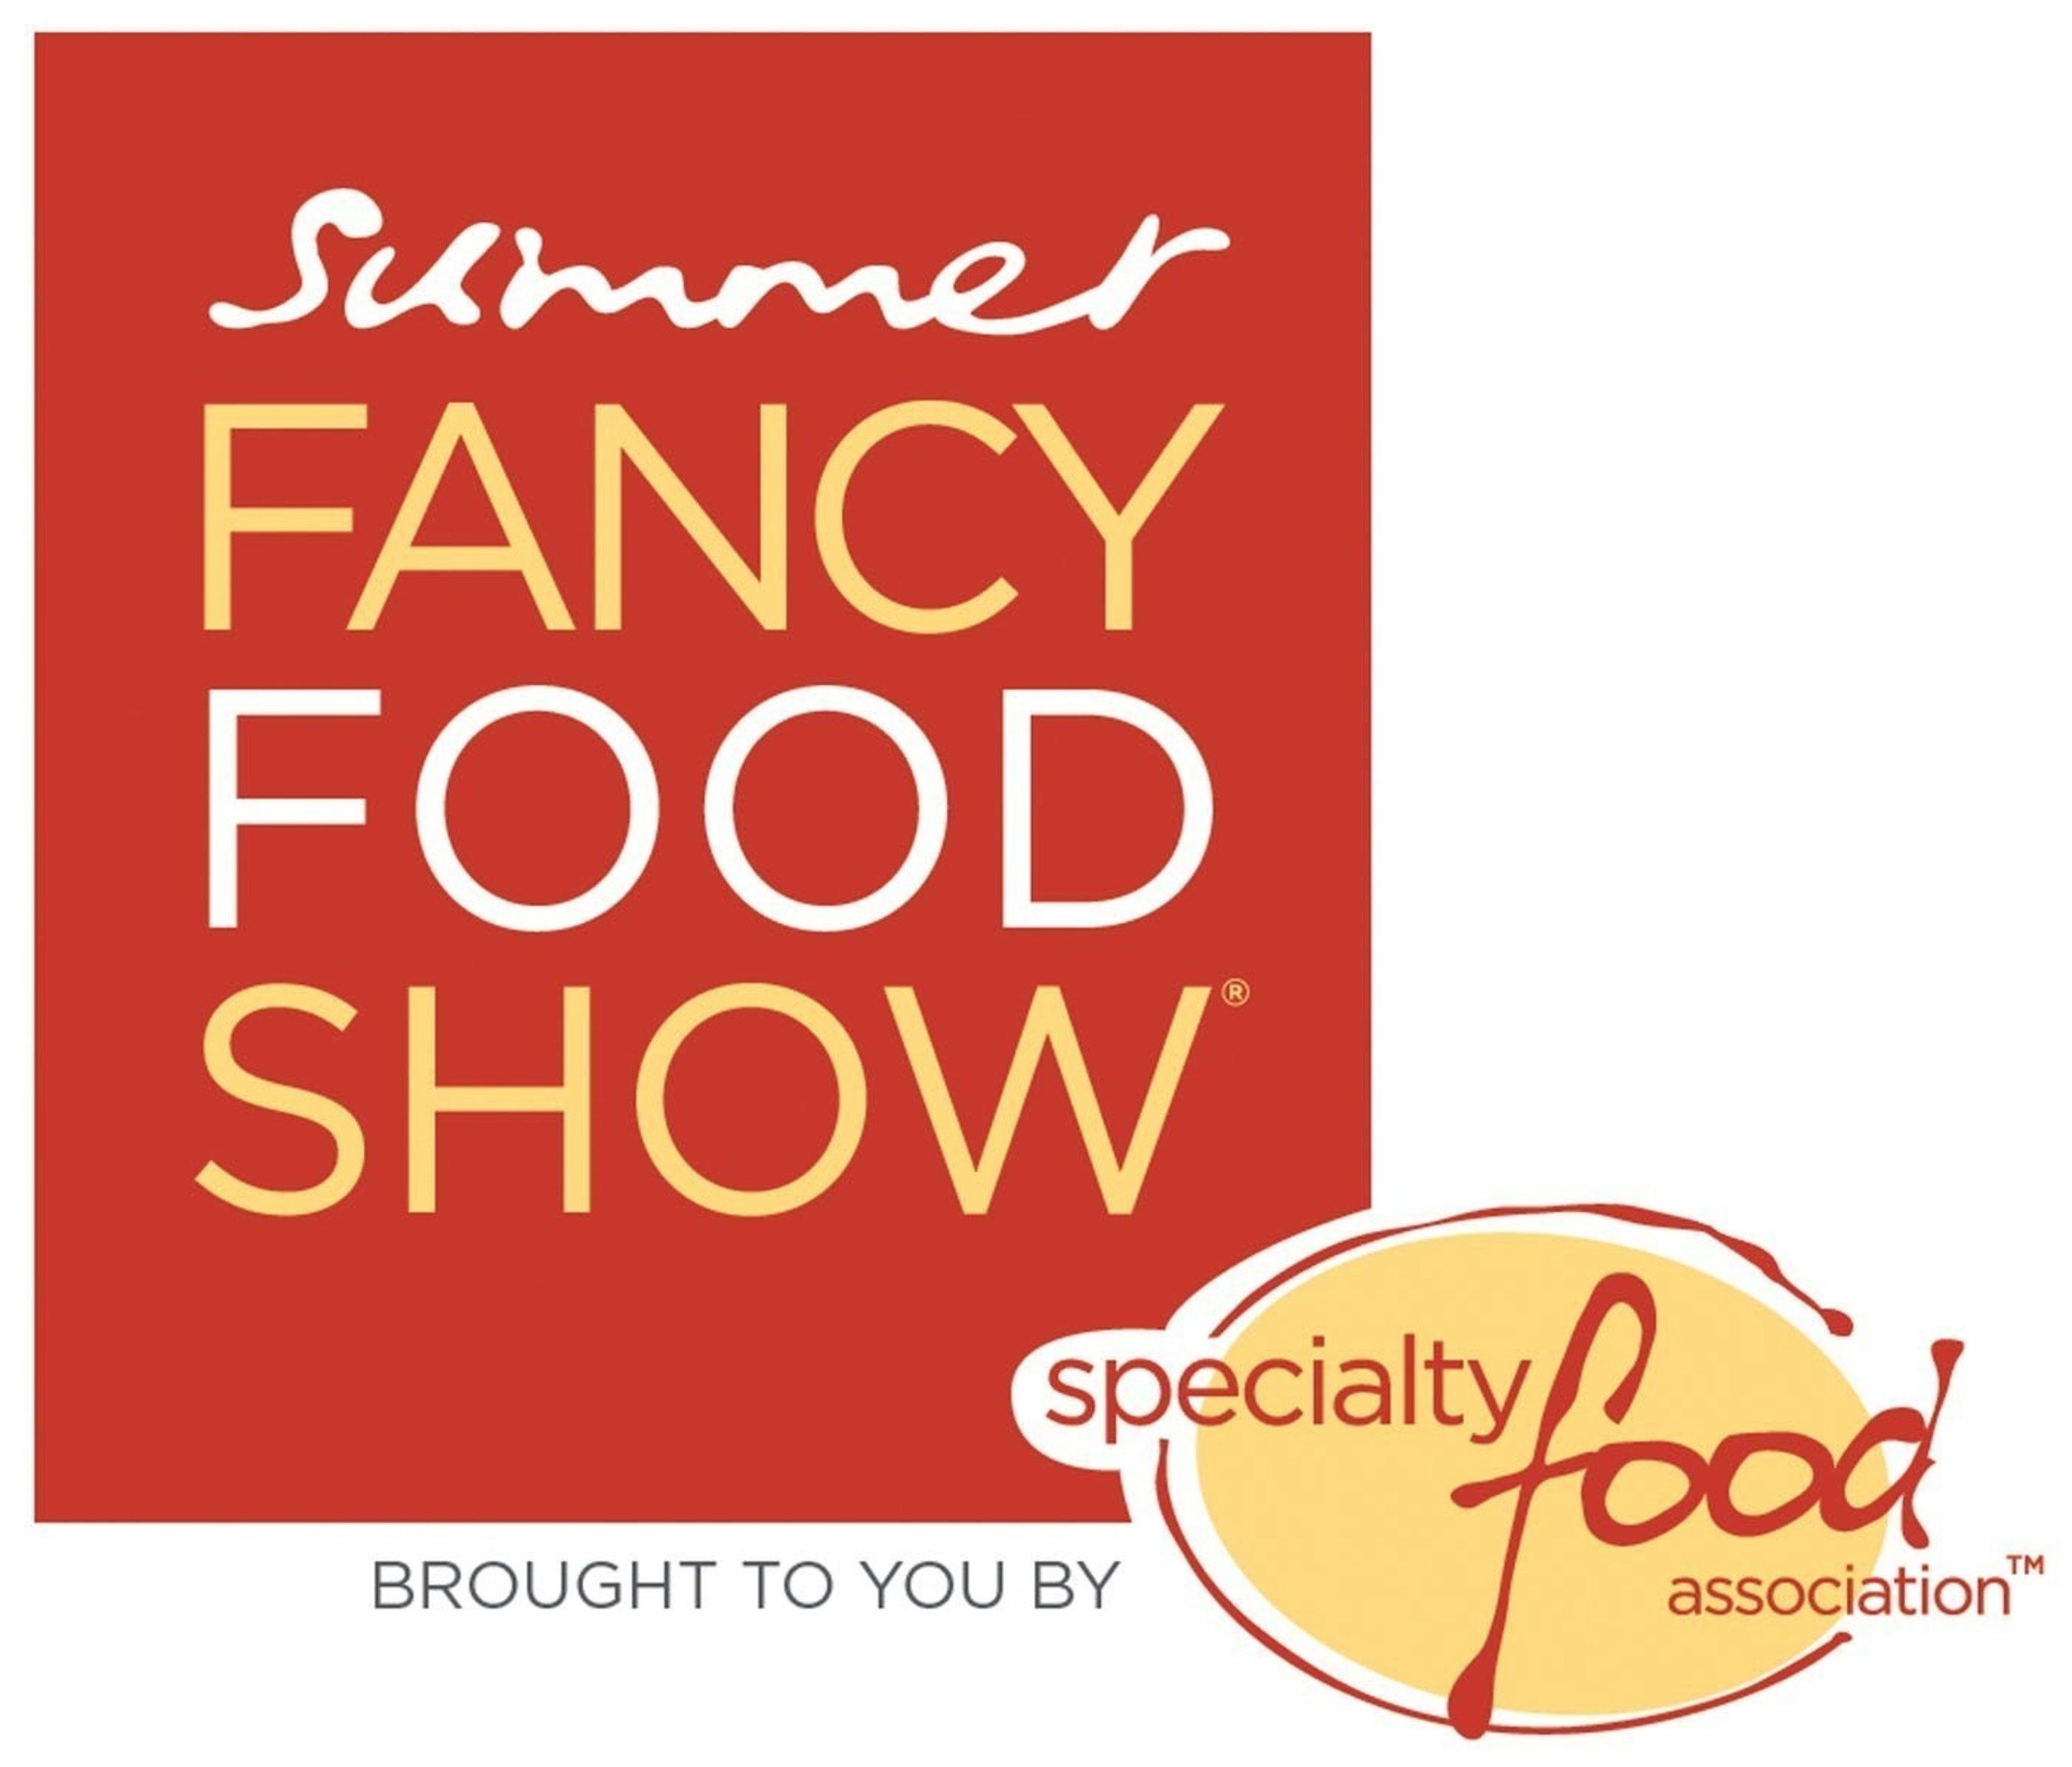 Summer Fancy Food Show brought to you by Specialty Food Association